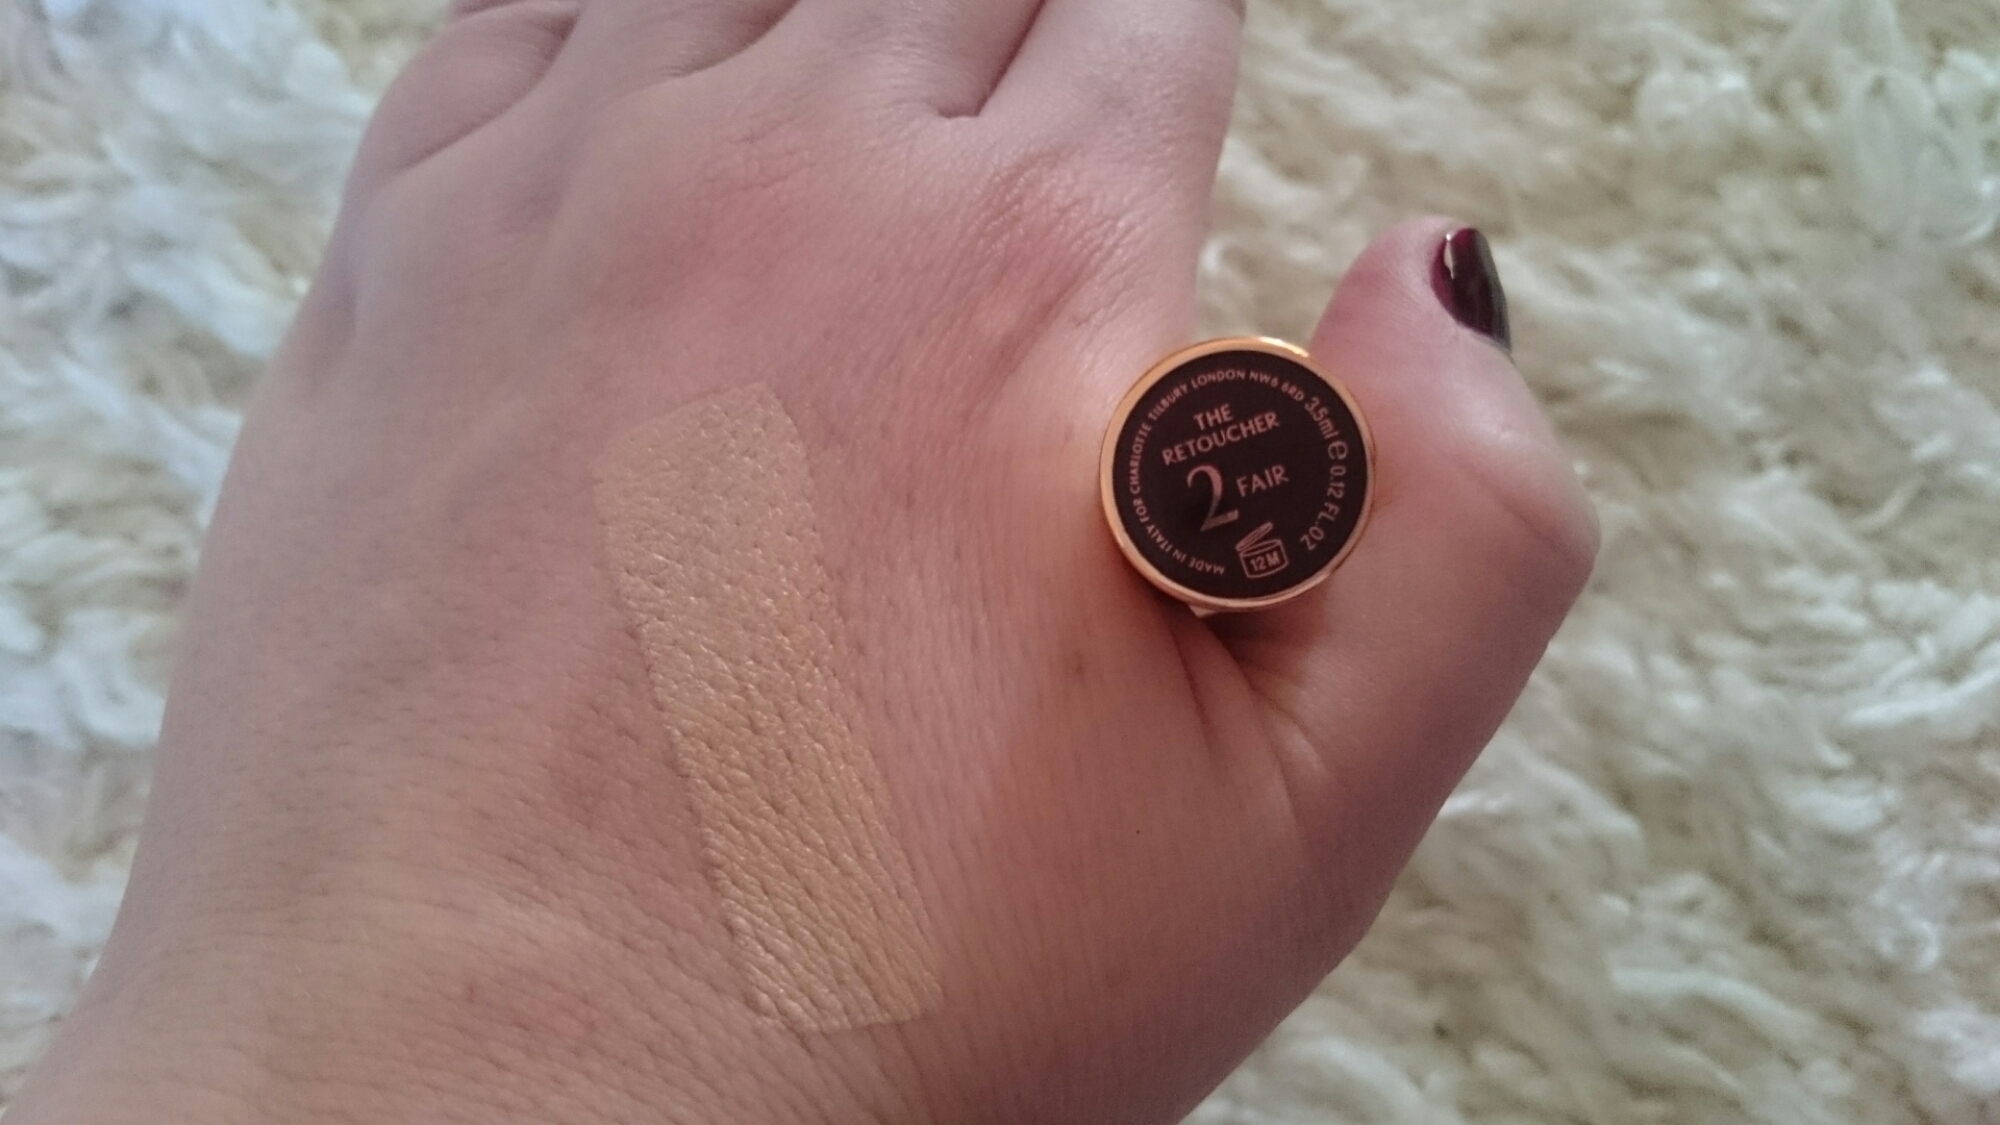 L'Oreal Paris True Match Concealer pic 12-Easy to blend.-By simmi_haswani